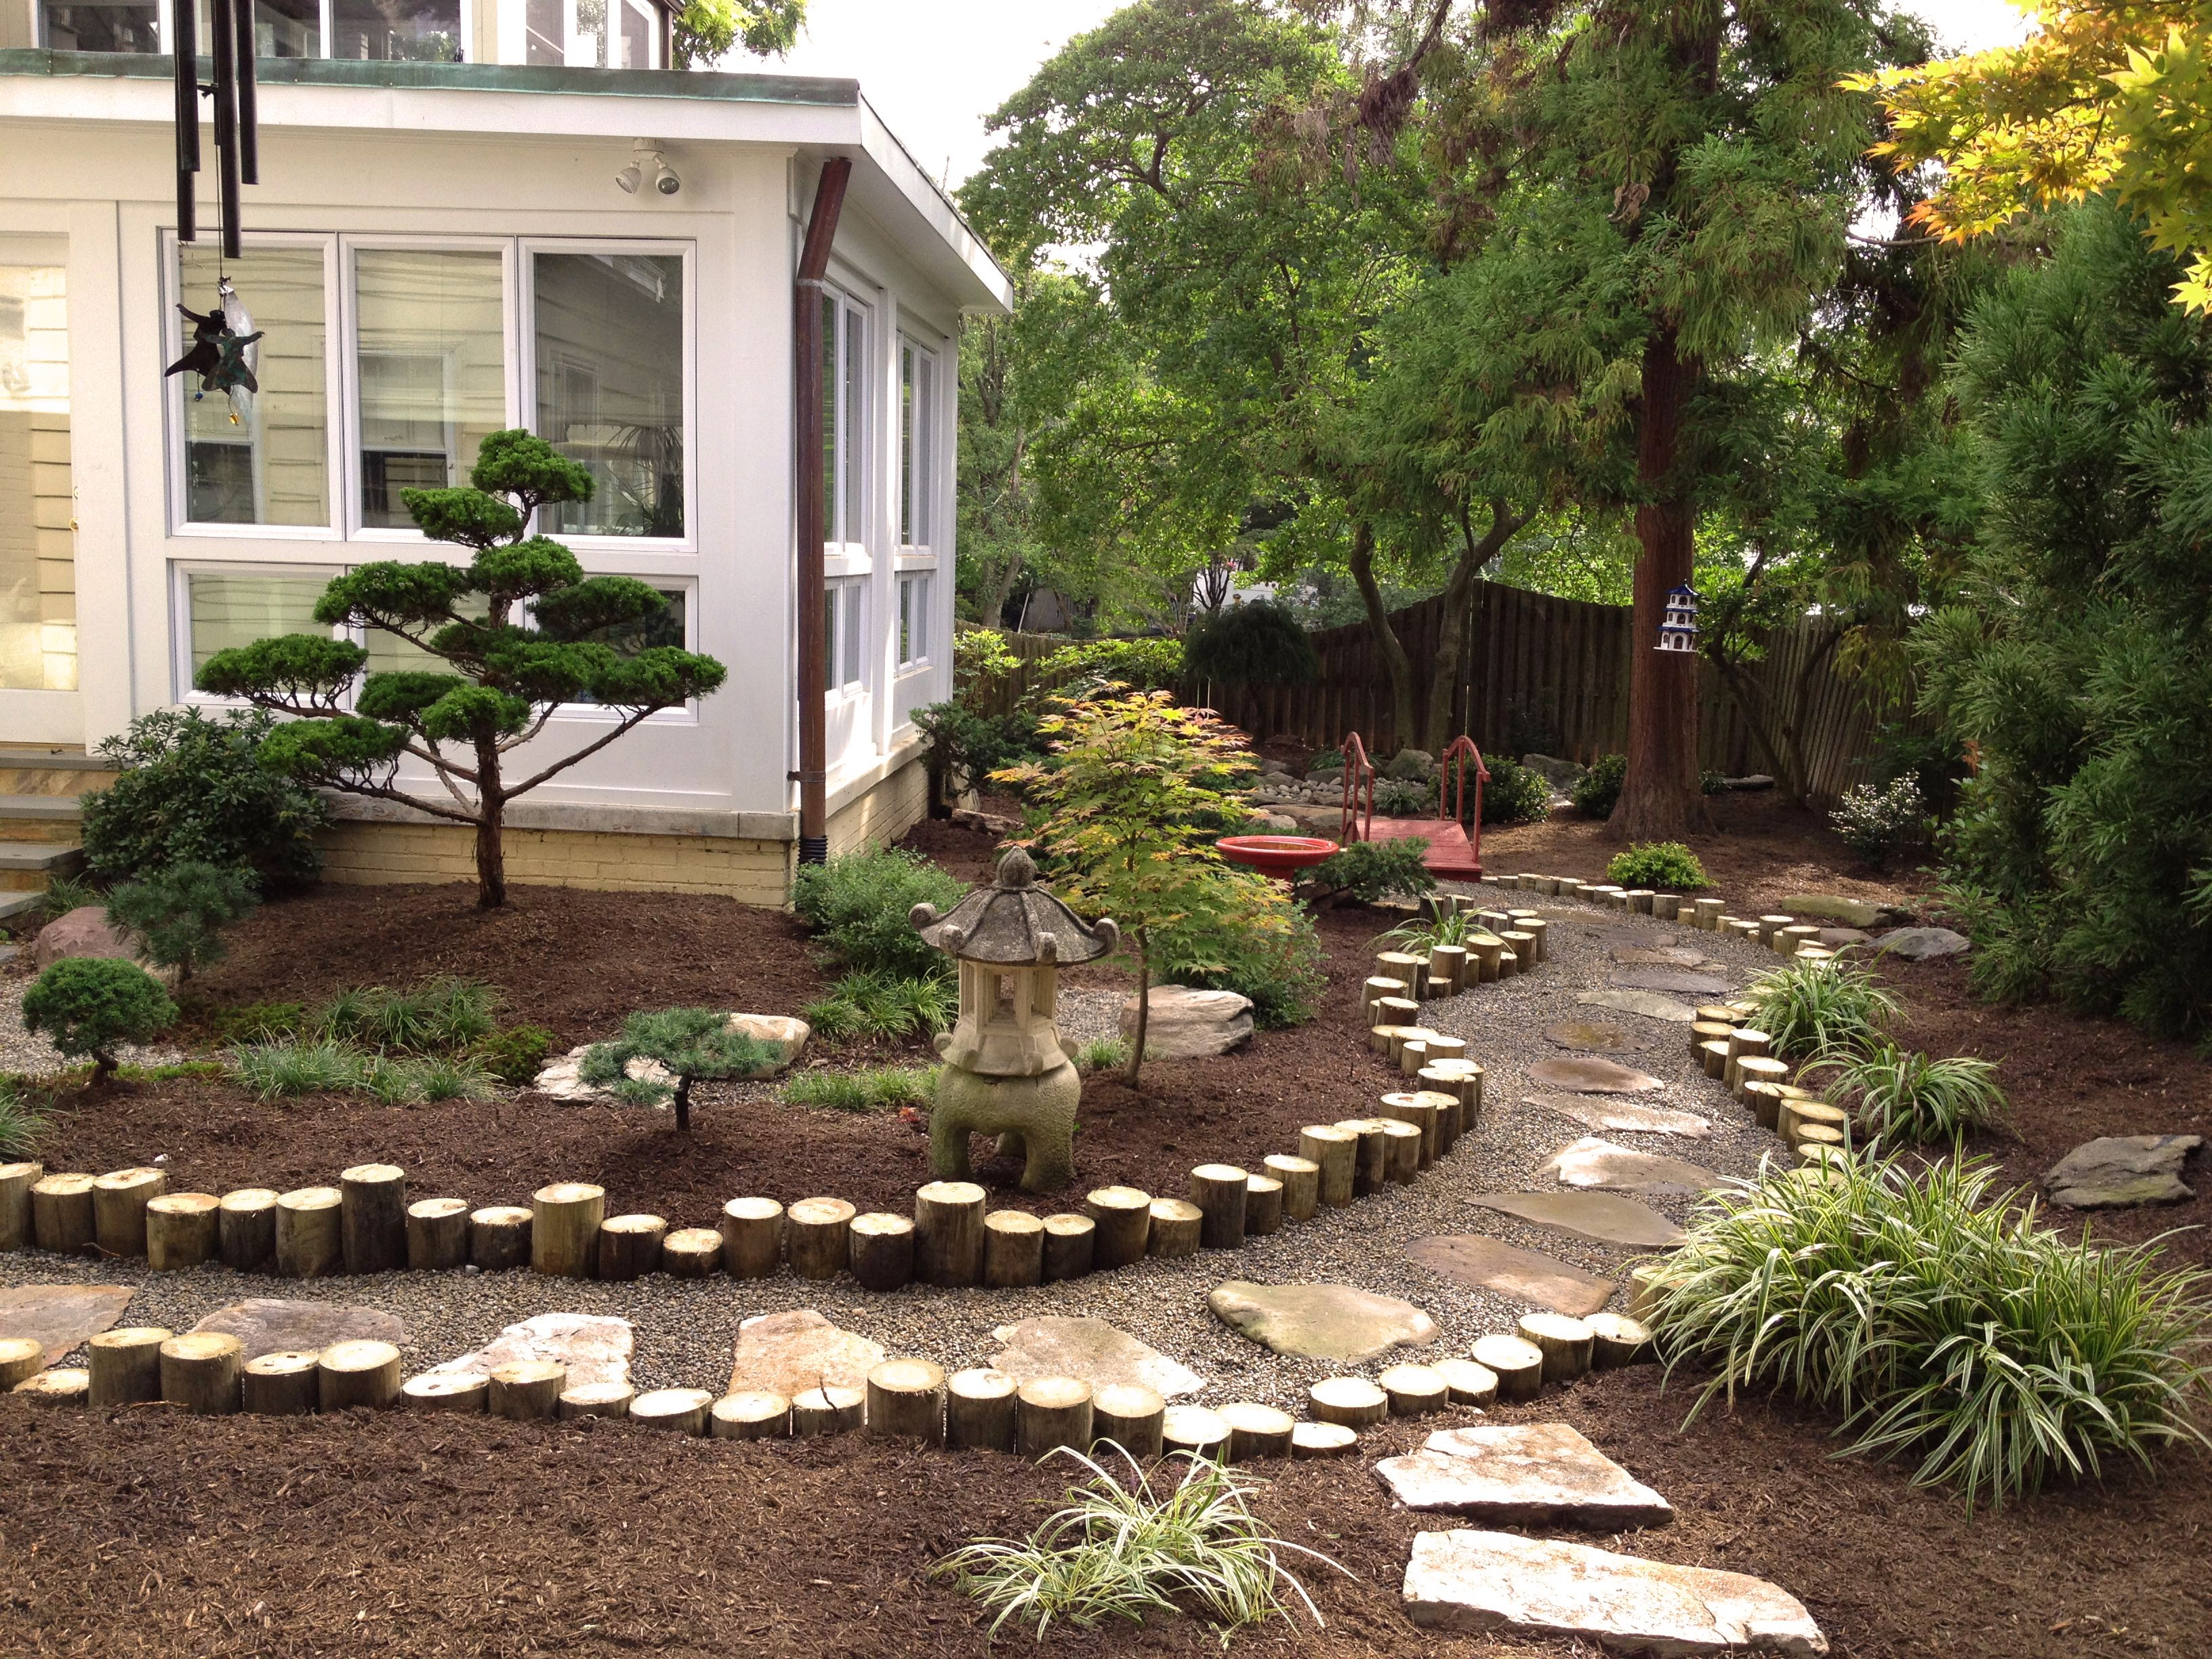 Japanese garden backyard landscape design by lee 39 s for Backyard garden designs and ideas